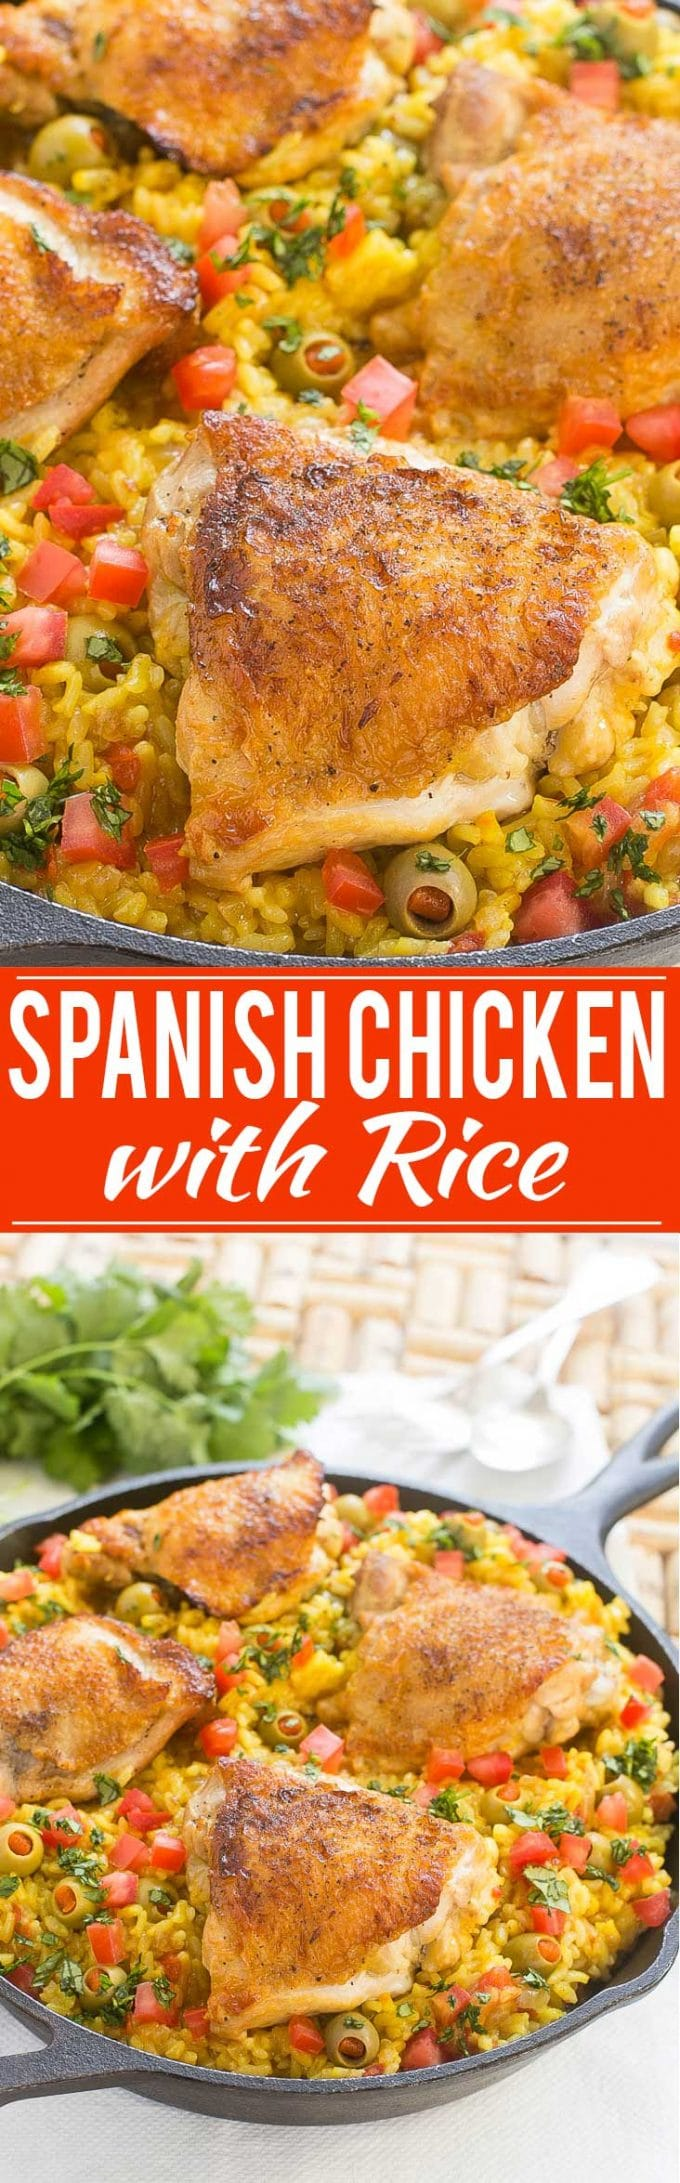 Spanish Chicken with Rice Recipe | Arroz con Pollo Recipe | Easy Spanish Chicken with Rice Recipe | Best Spanish Chicken with Rice Recipe | Easy Arroz con Pollo Recipe | Best Arroz con Pollo Recipe